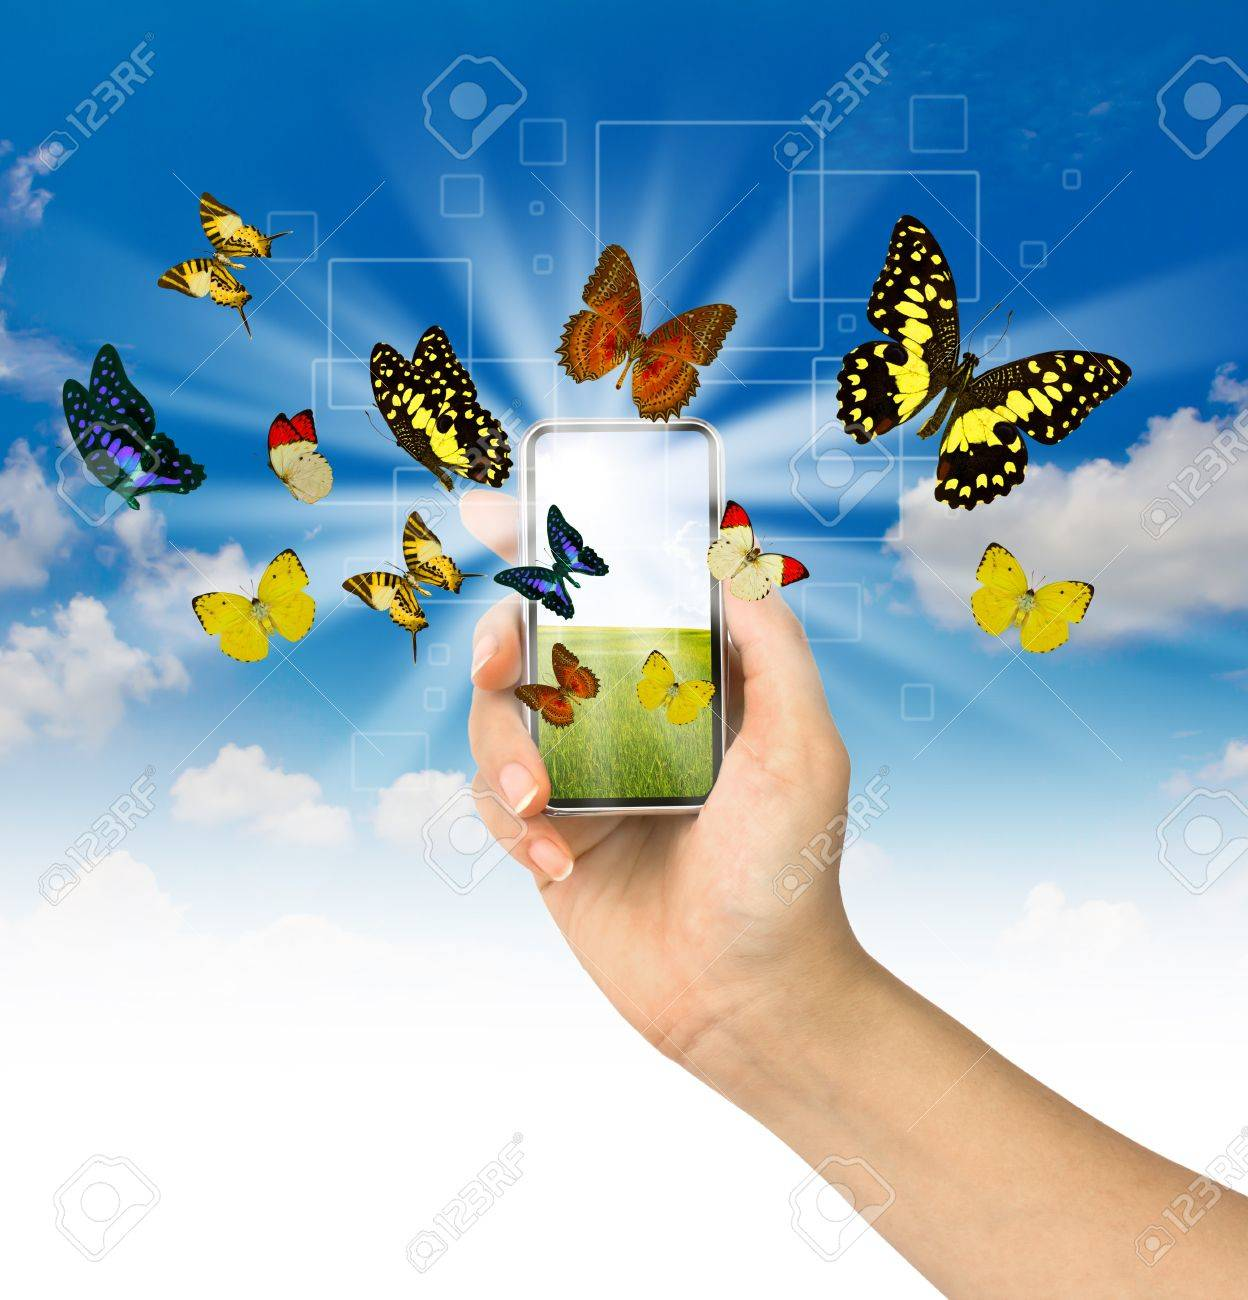 Butterfly reaches out of phone Stock Photo - 13638747